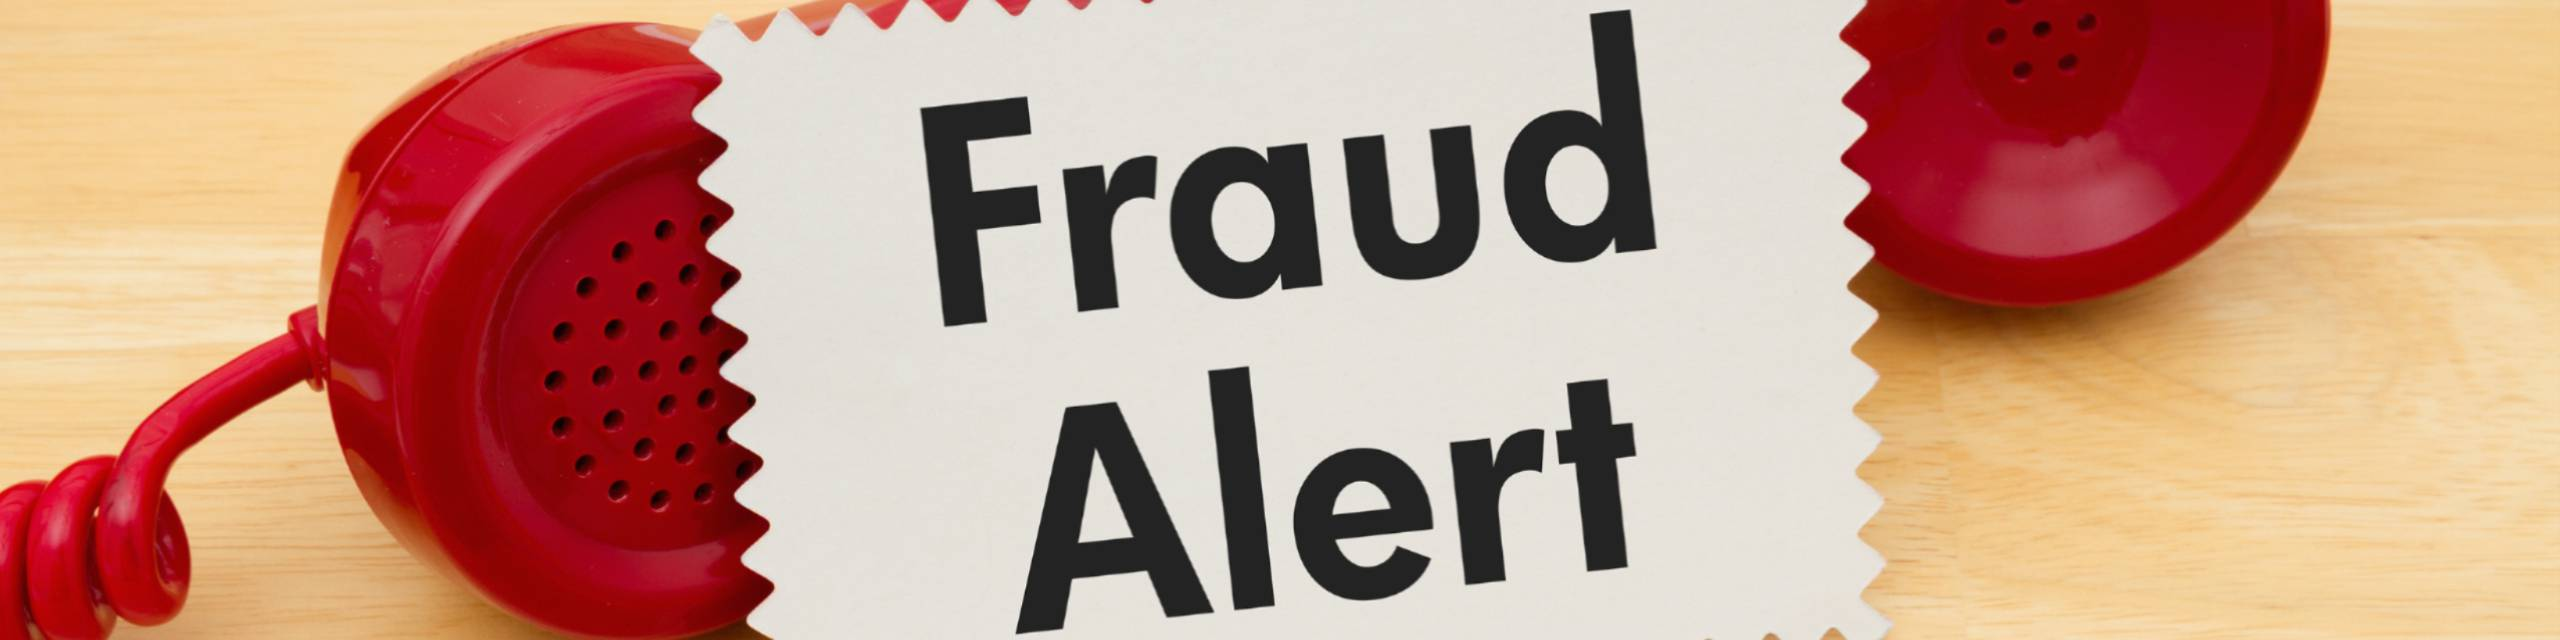 Newsroom banner telephone fraud alert